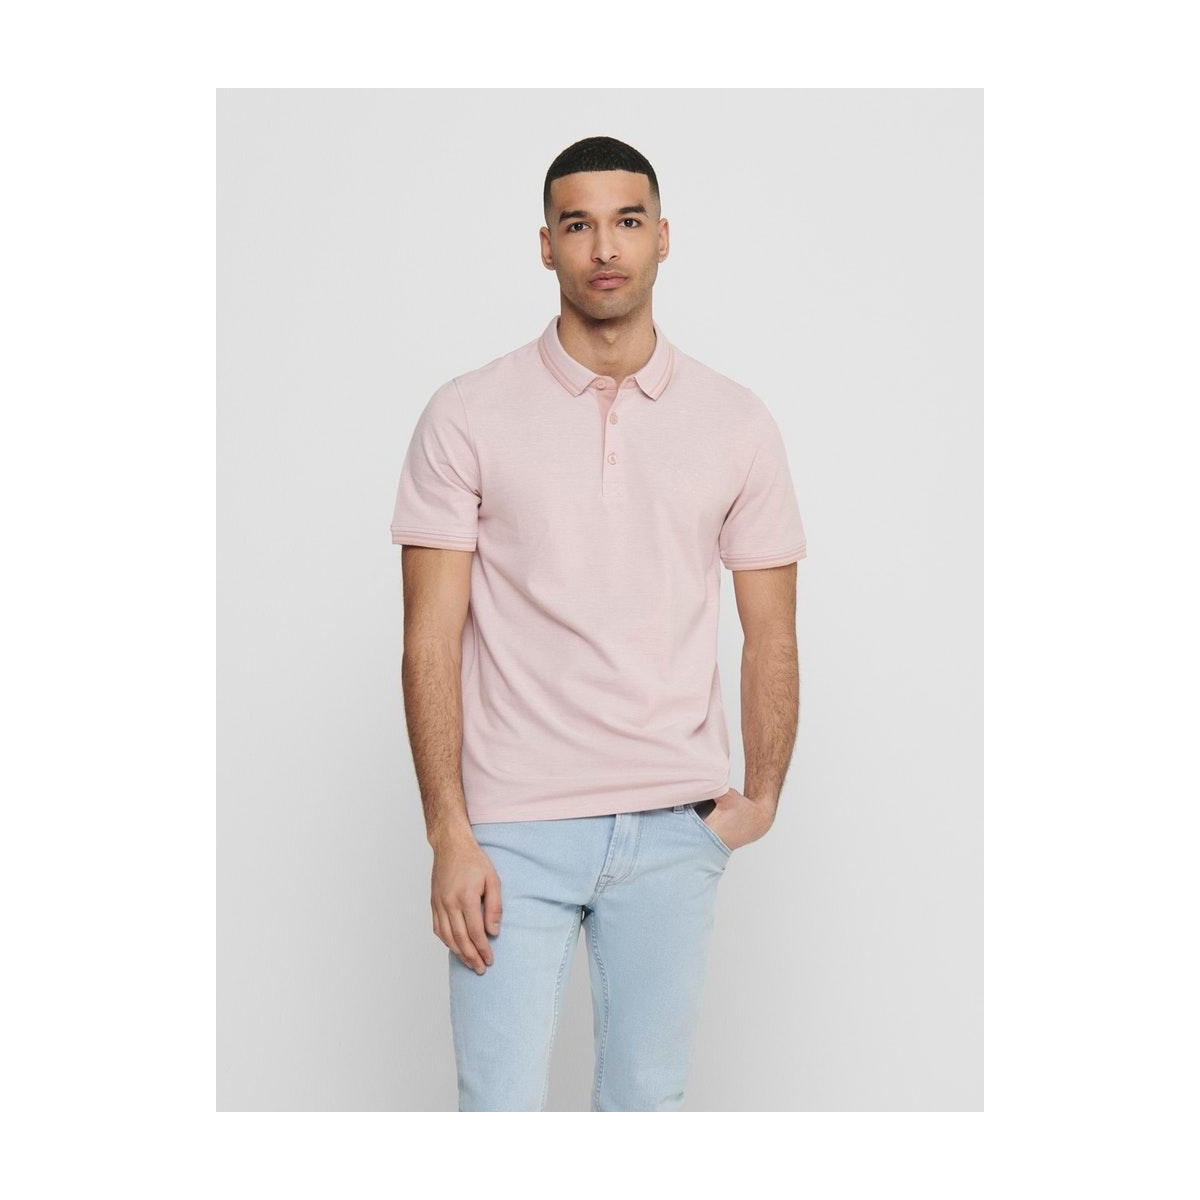 onsstan ss fitted polo tee 6560 noos 22011349 only & sons polo misty rose detail: solid